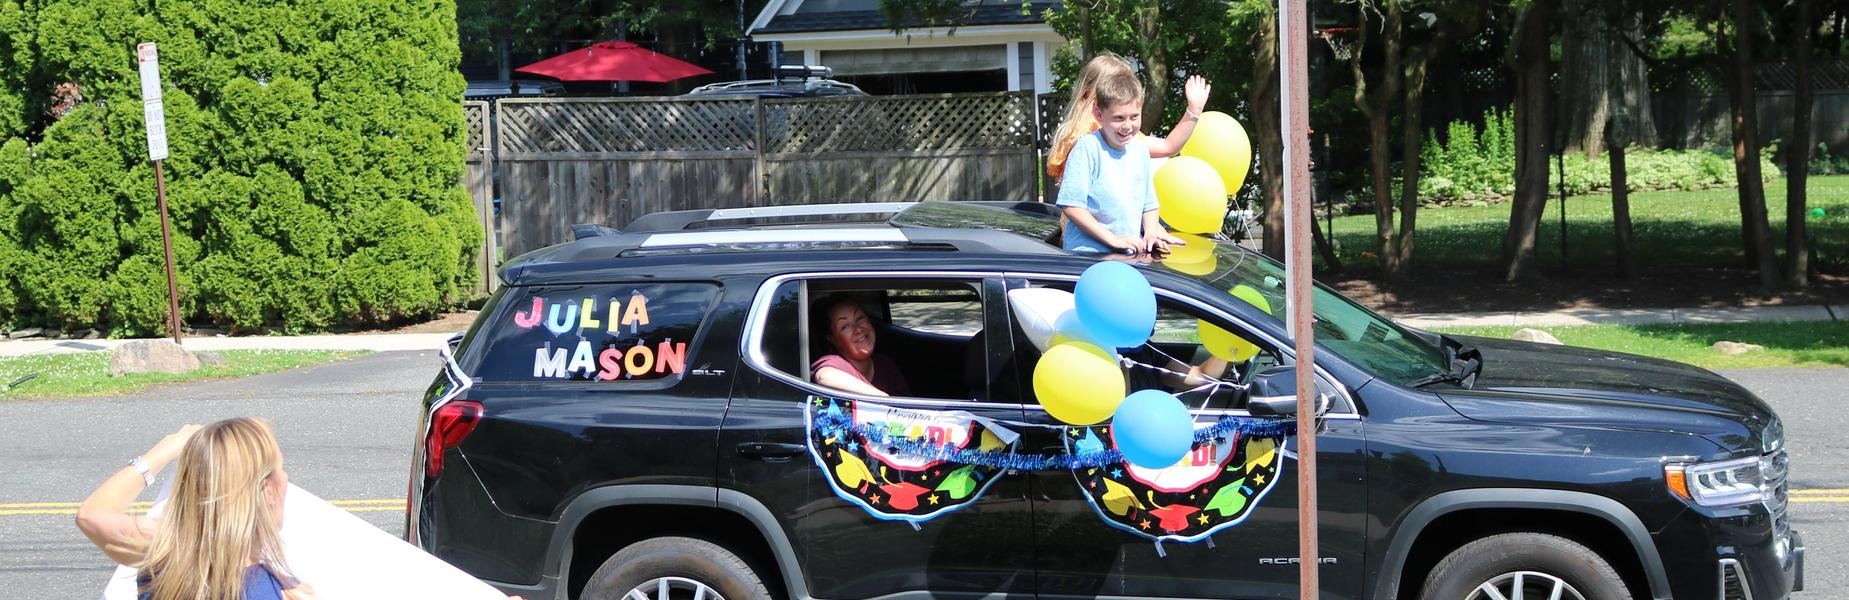 Photo of Franklin 5th grader and family during Grade 5 Clap Out Car Parade.